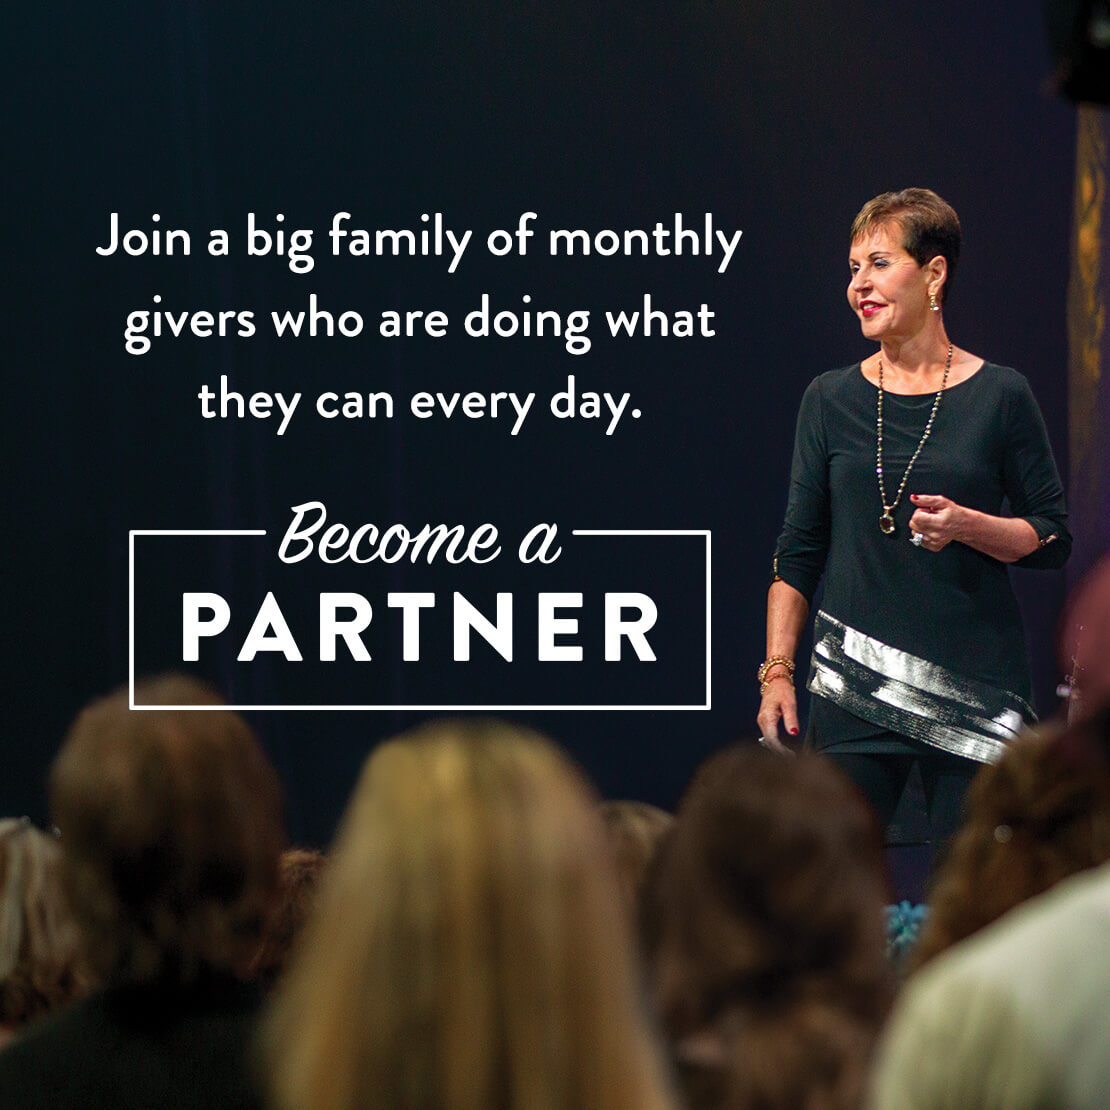 Joyce with text asking you to become a partner